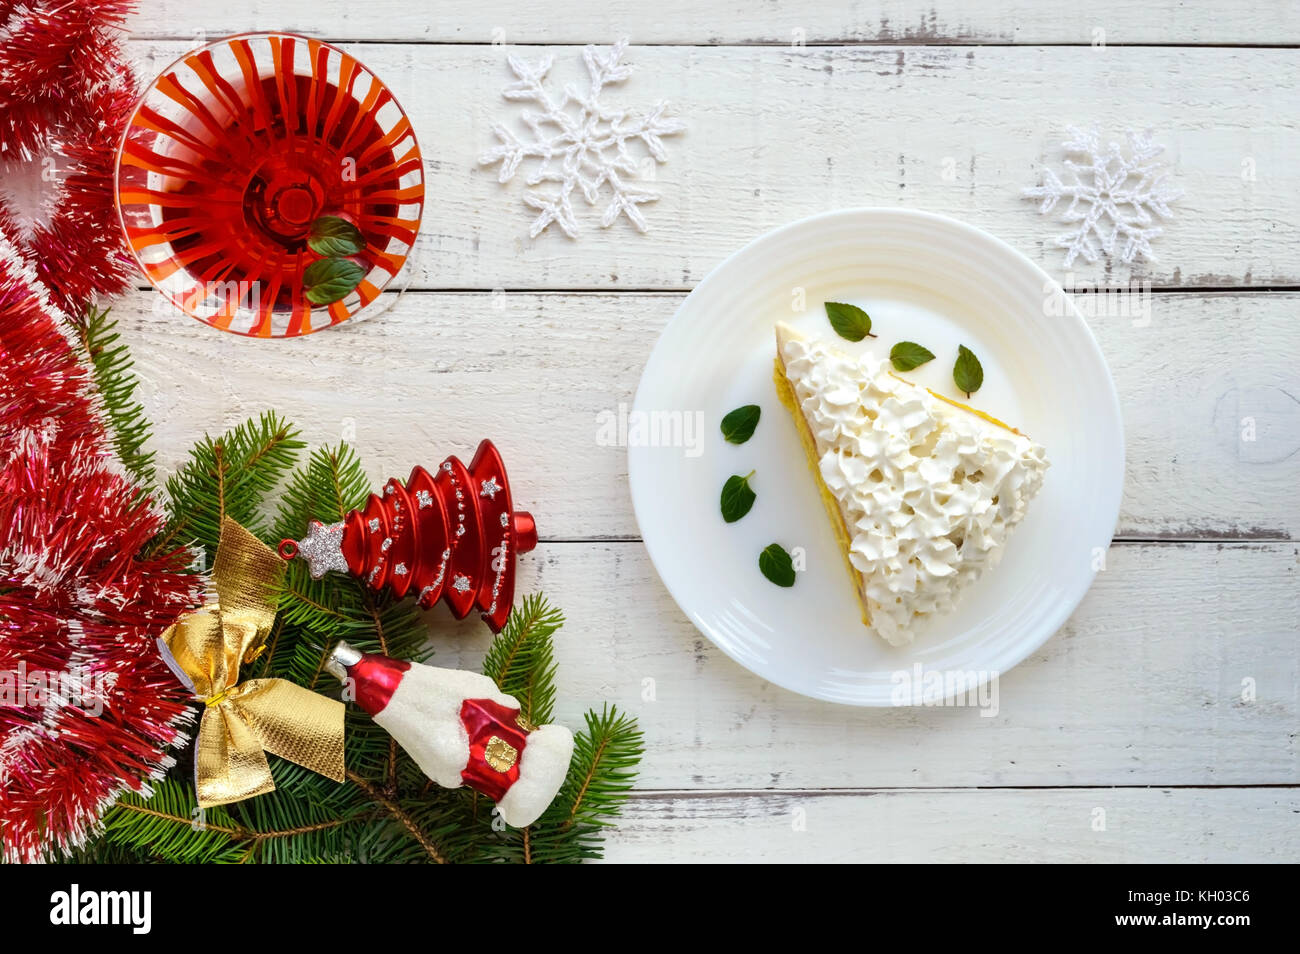 A large piece of delicate sponge cake decorating air cream. Glass with a cocktail. Festive dessert on a white background. - Stock Image